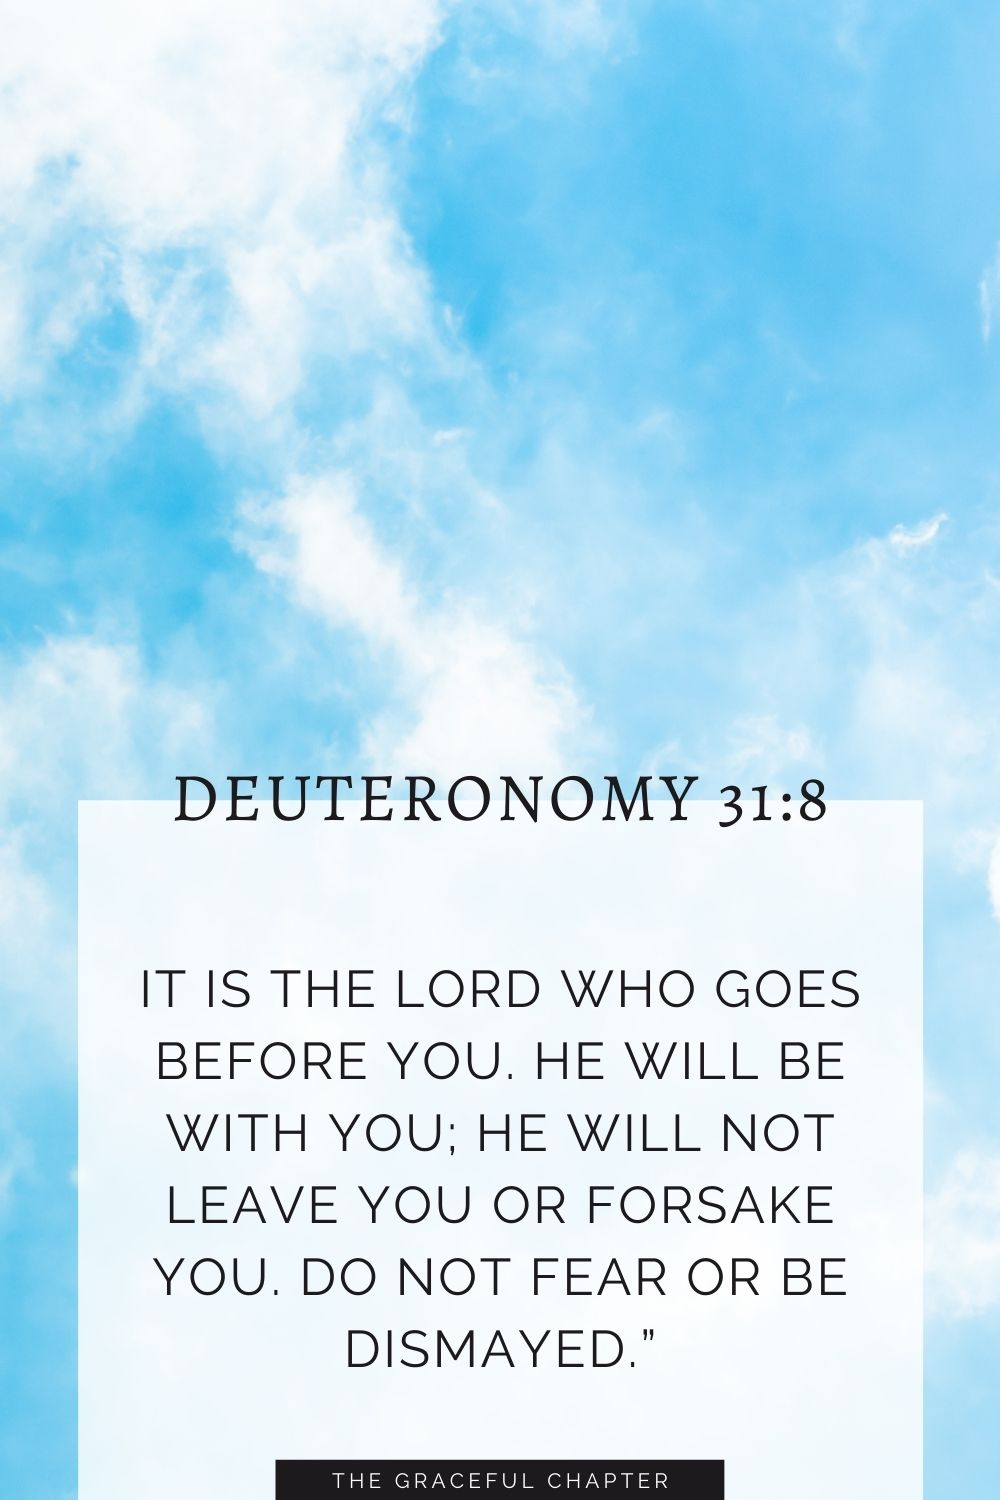 """It is the Lord who goes before you. He will be with you; he will not leave you or forsake you. Do not fear or be dismayed."""" Deuteronomy 31:8"""